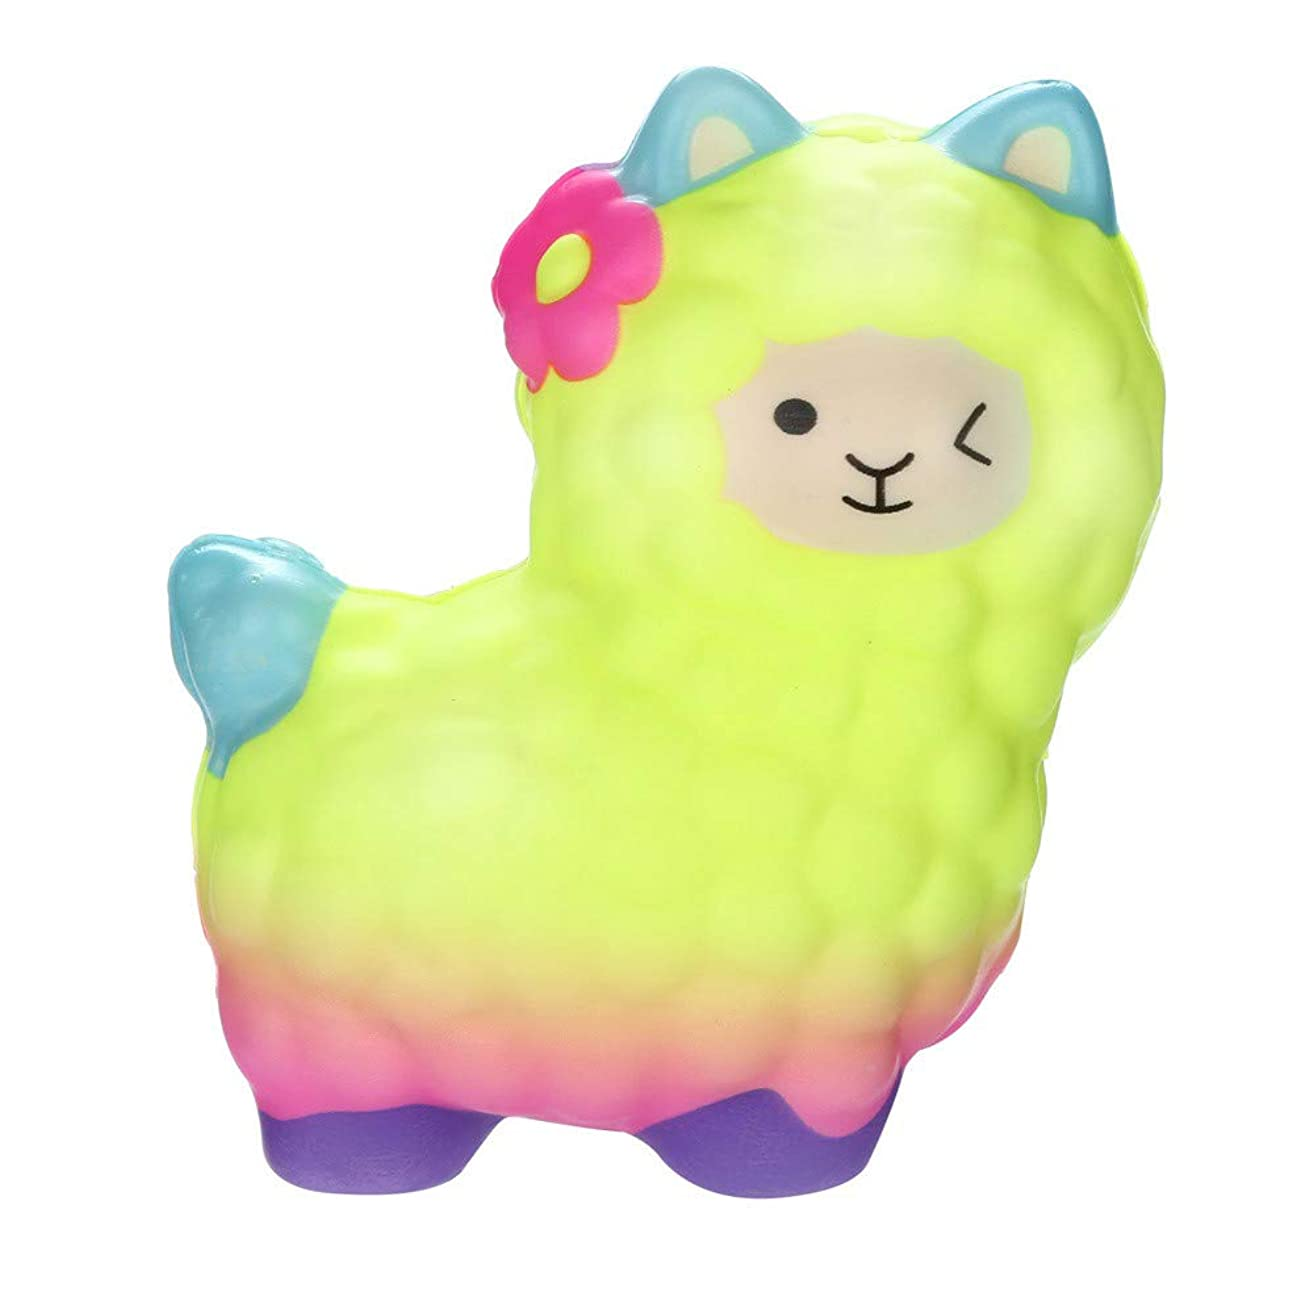 Stress Relief Toys,Squishies Adorable Llamas Slow Rising Fruits Scented Squeeze Stress Relief Toys